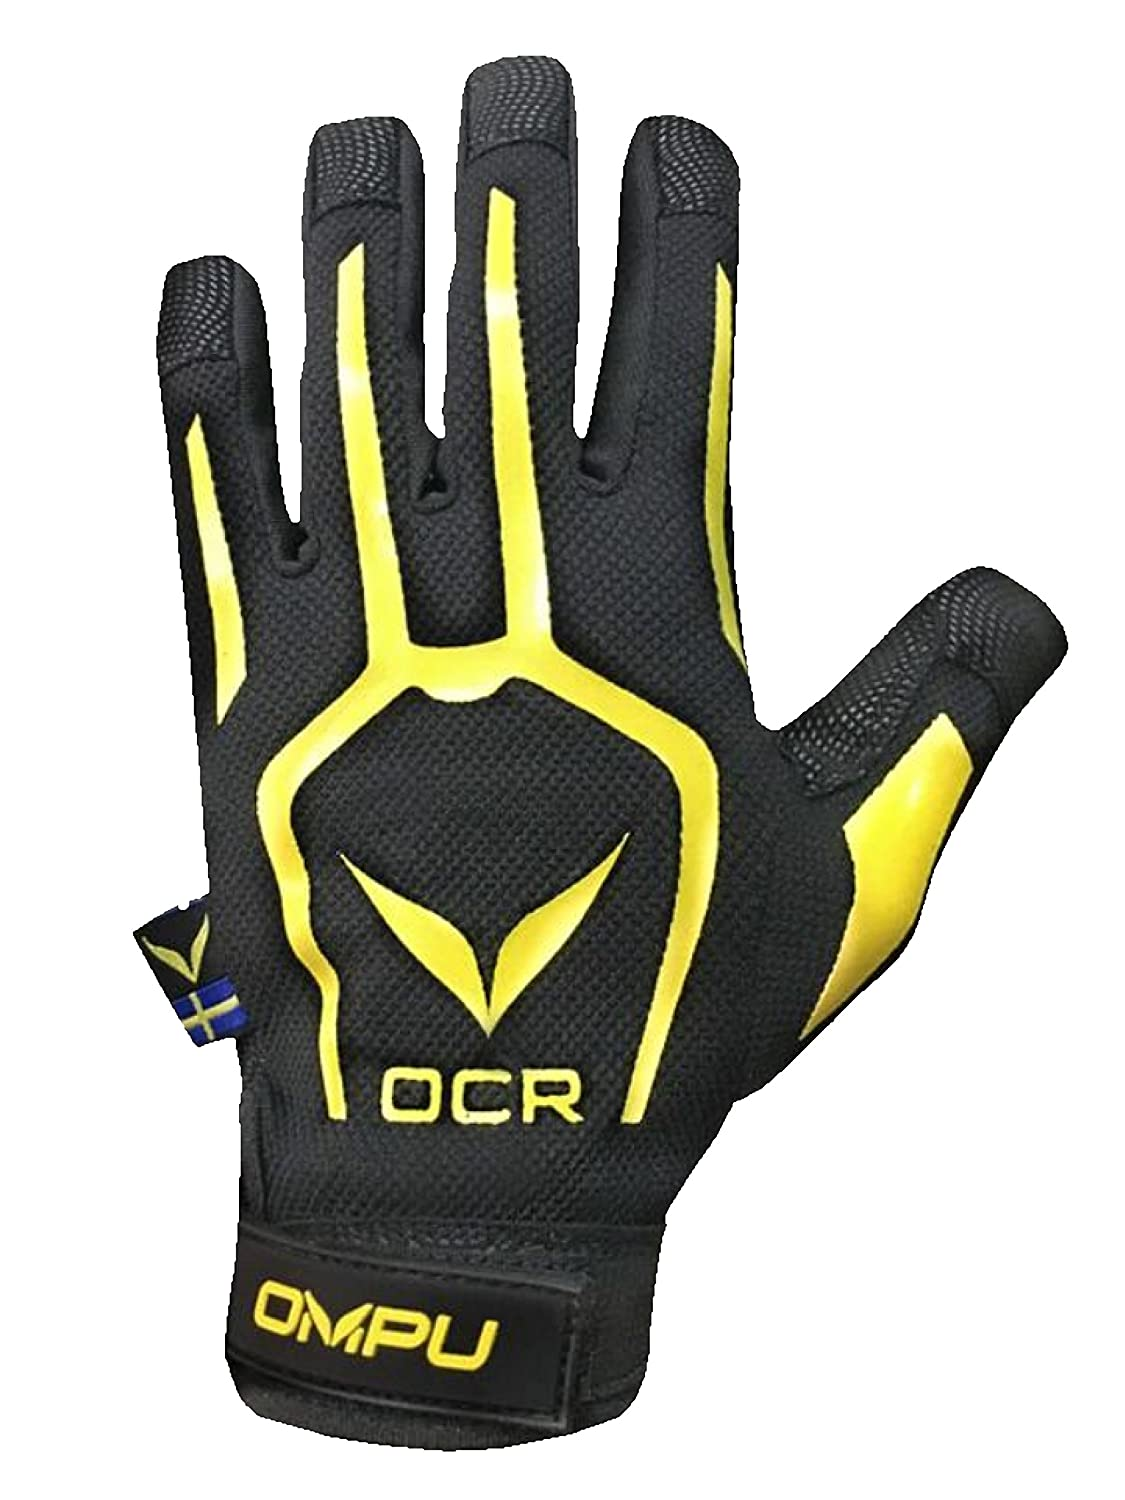 Black//Yellow OCR /& Outdoor Warm Weather Glove